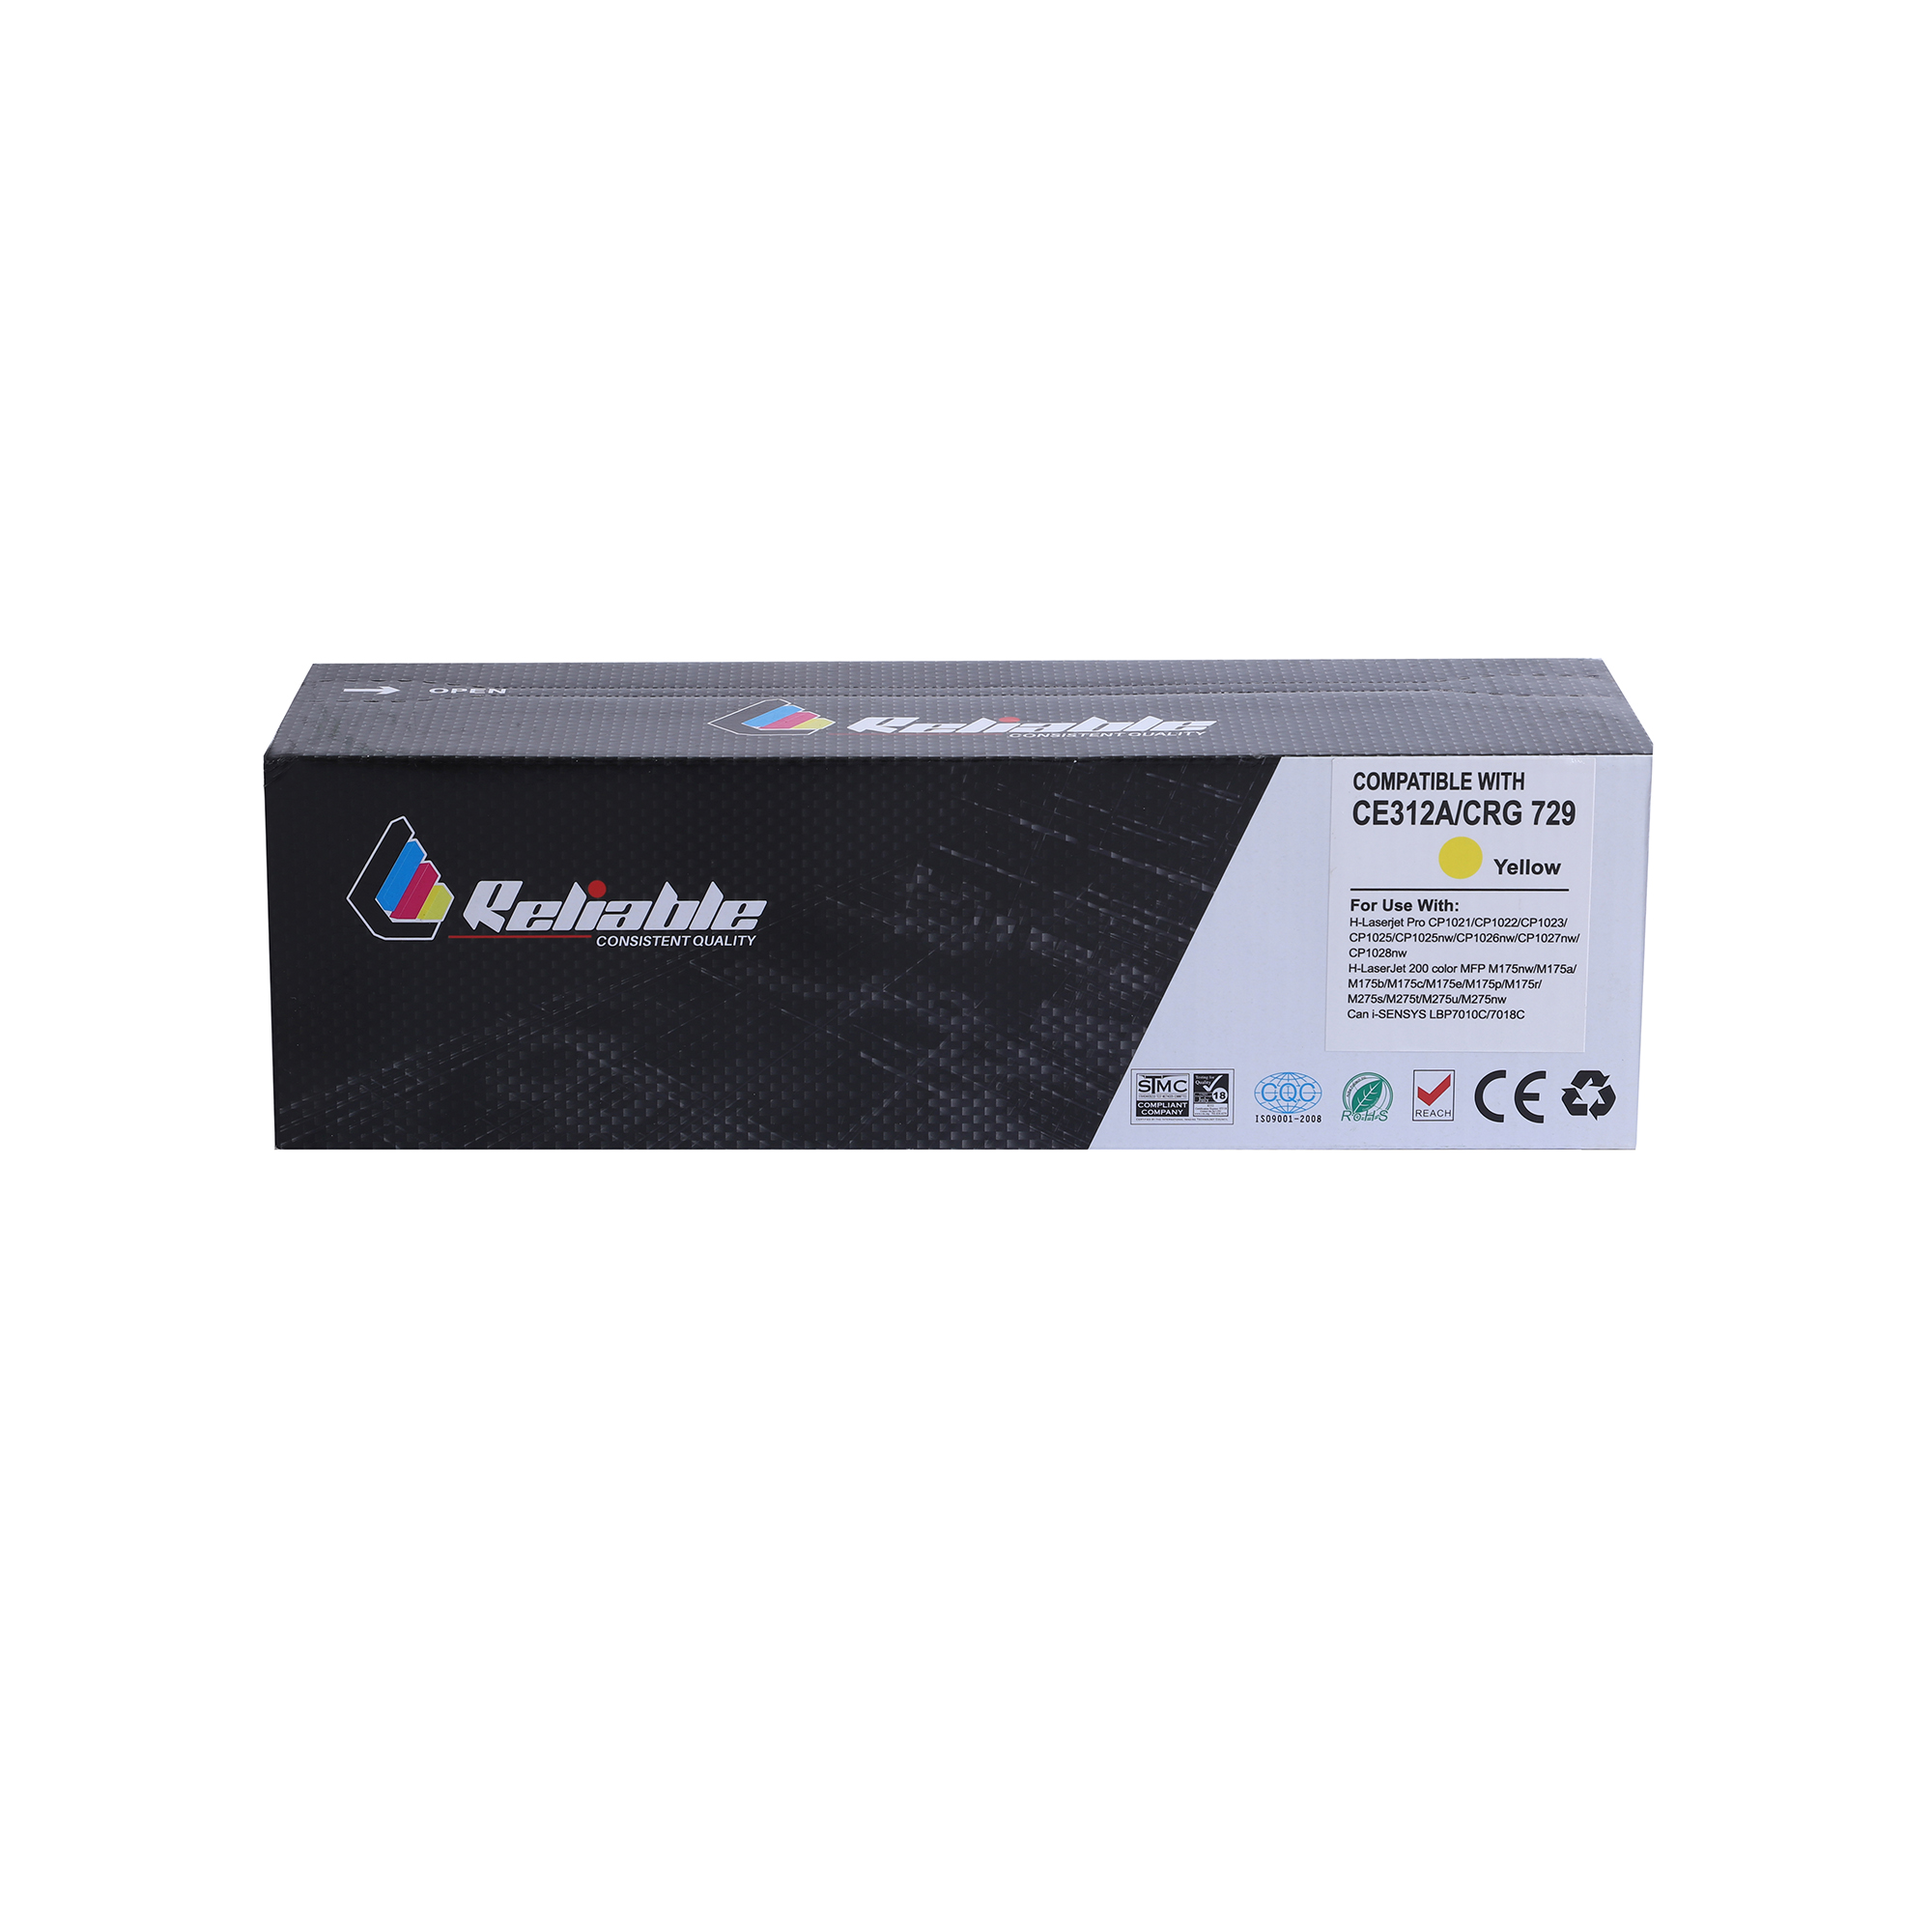 Reliable 130A (CF352A) / 126A (CE312A) Compatible Toner Cartridge - Yellow